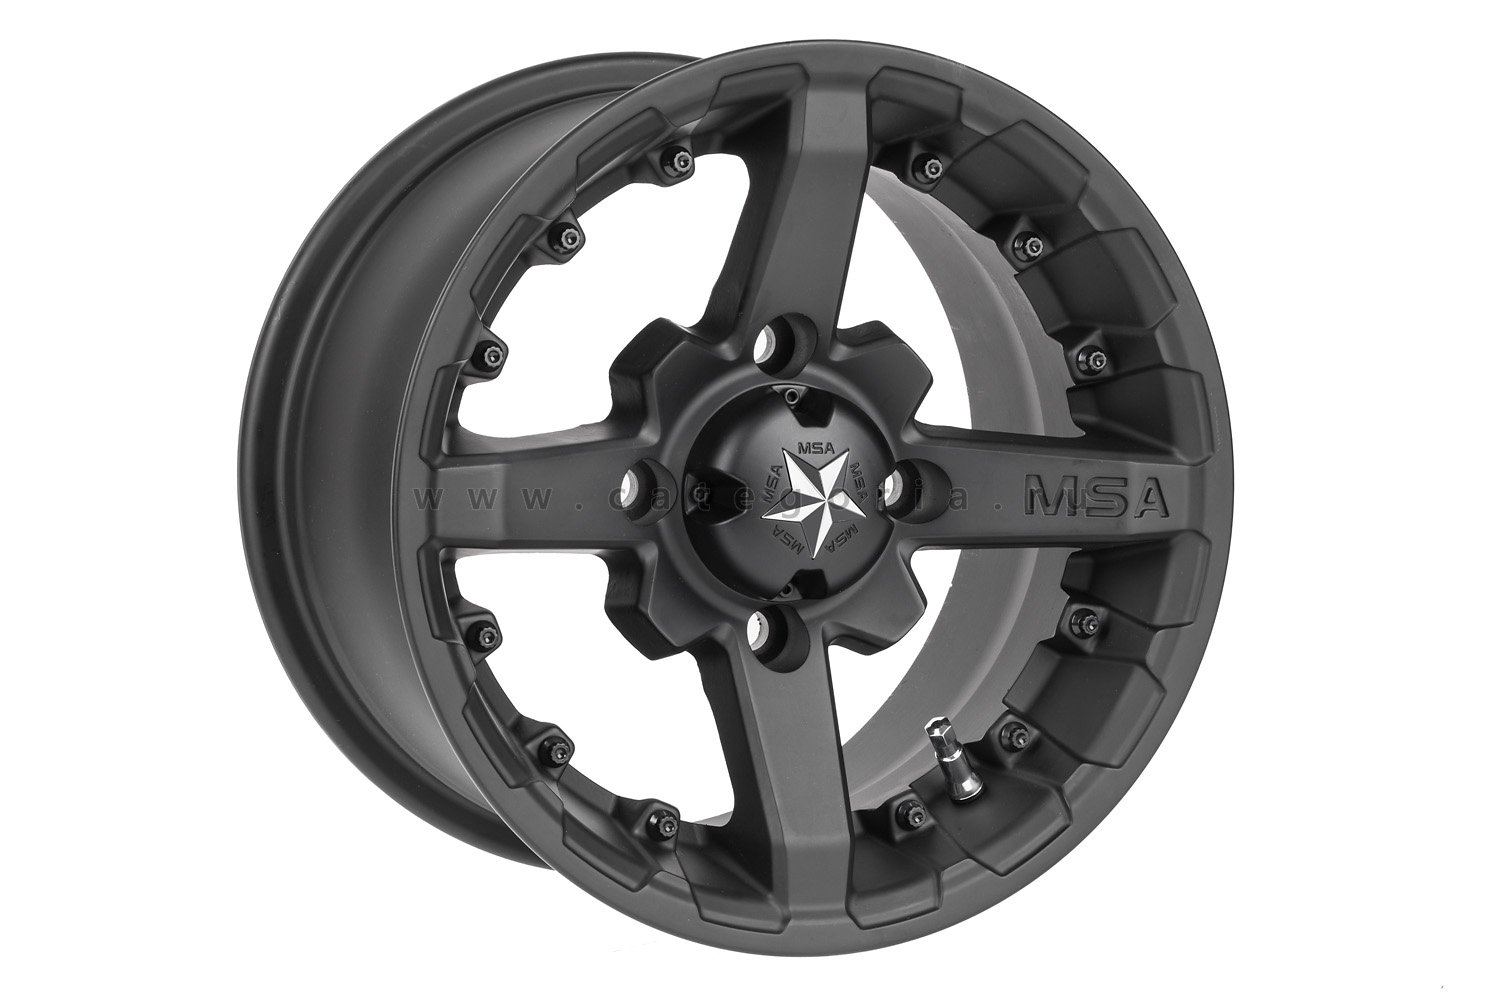 MSA M23 R14x10, 4x137, +0mm Battle (Flat Black) - диск колесный